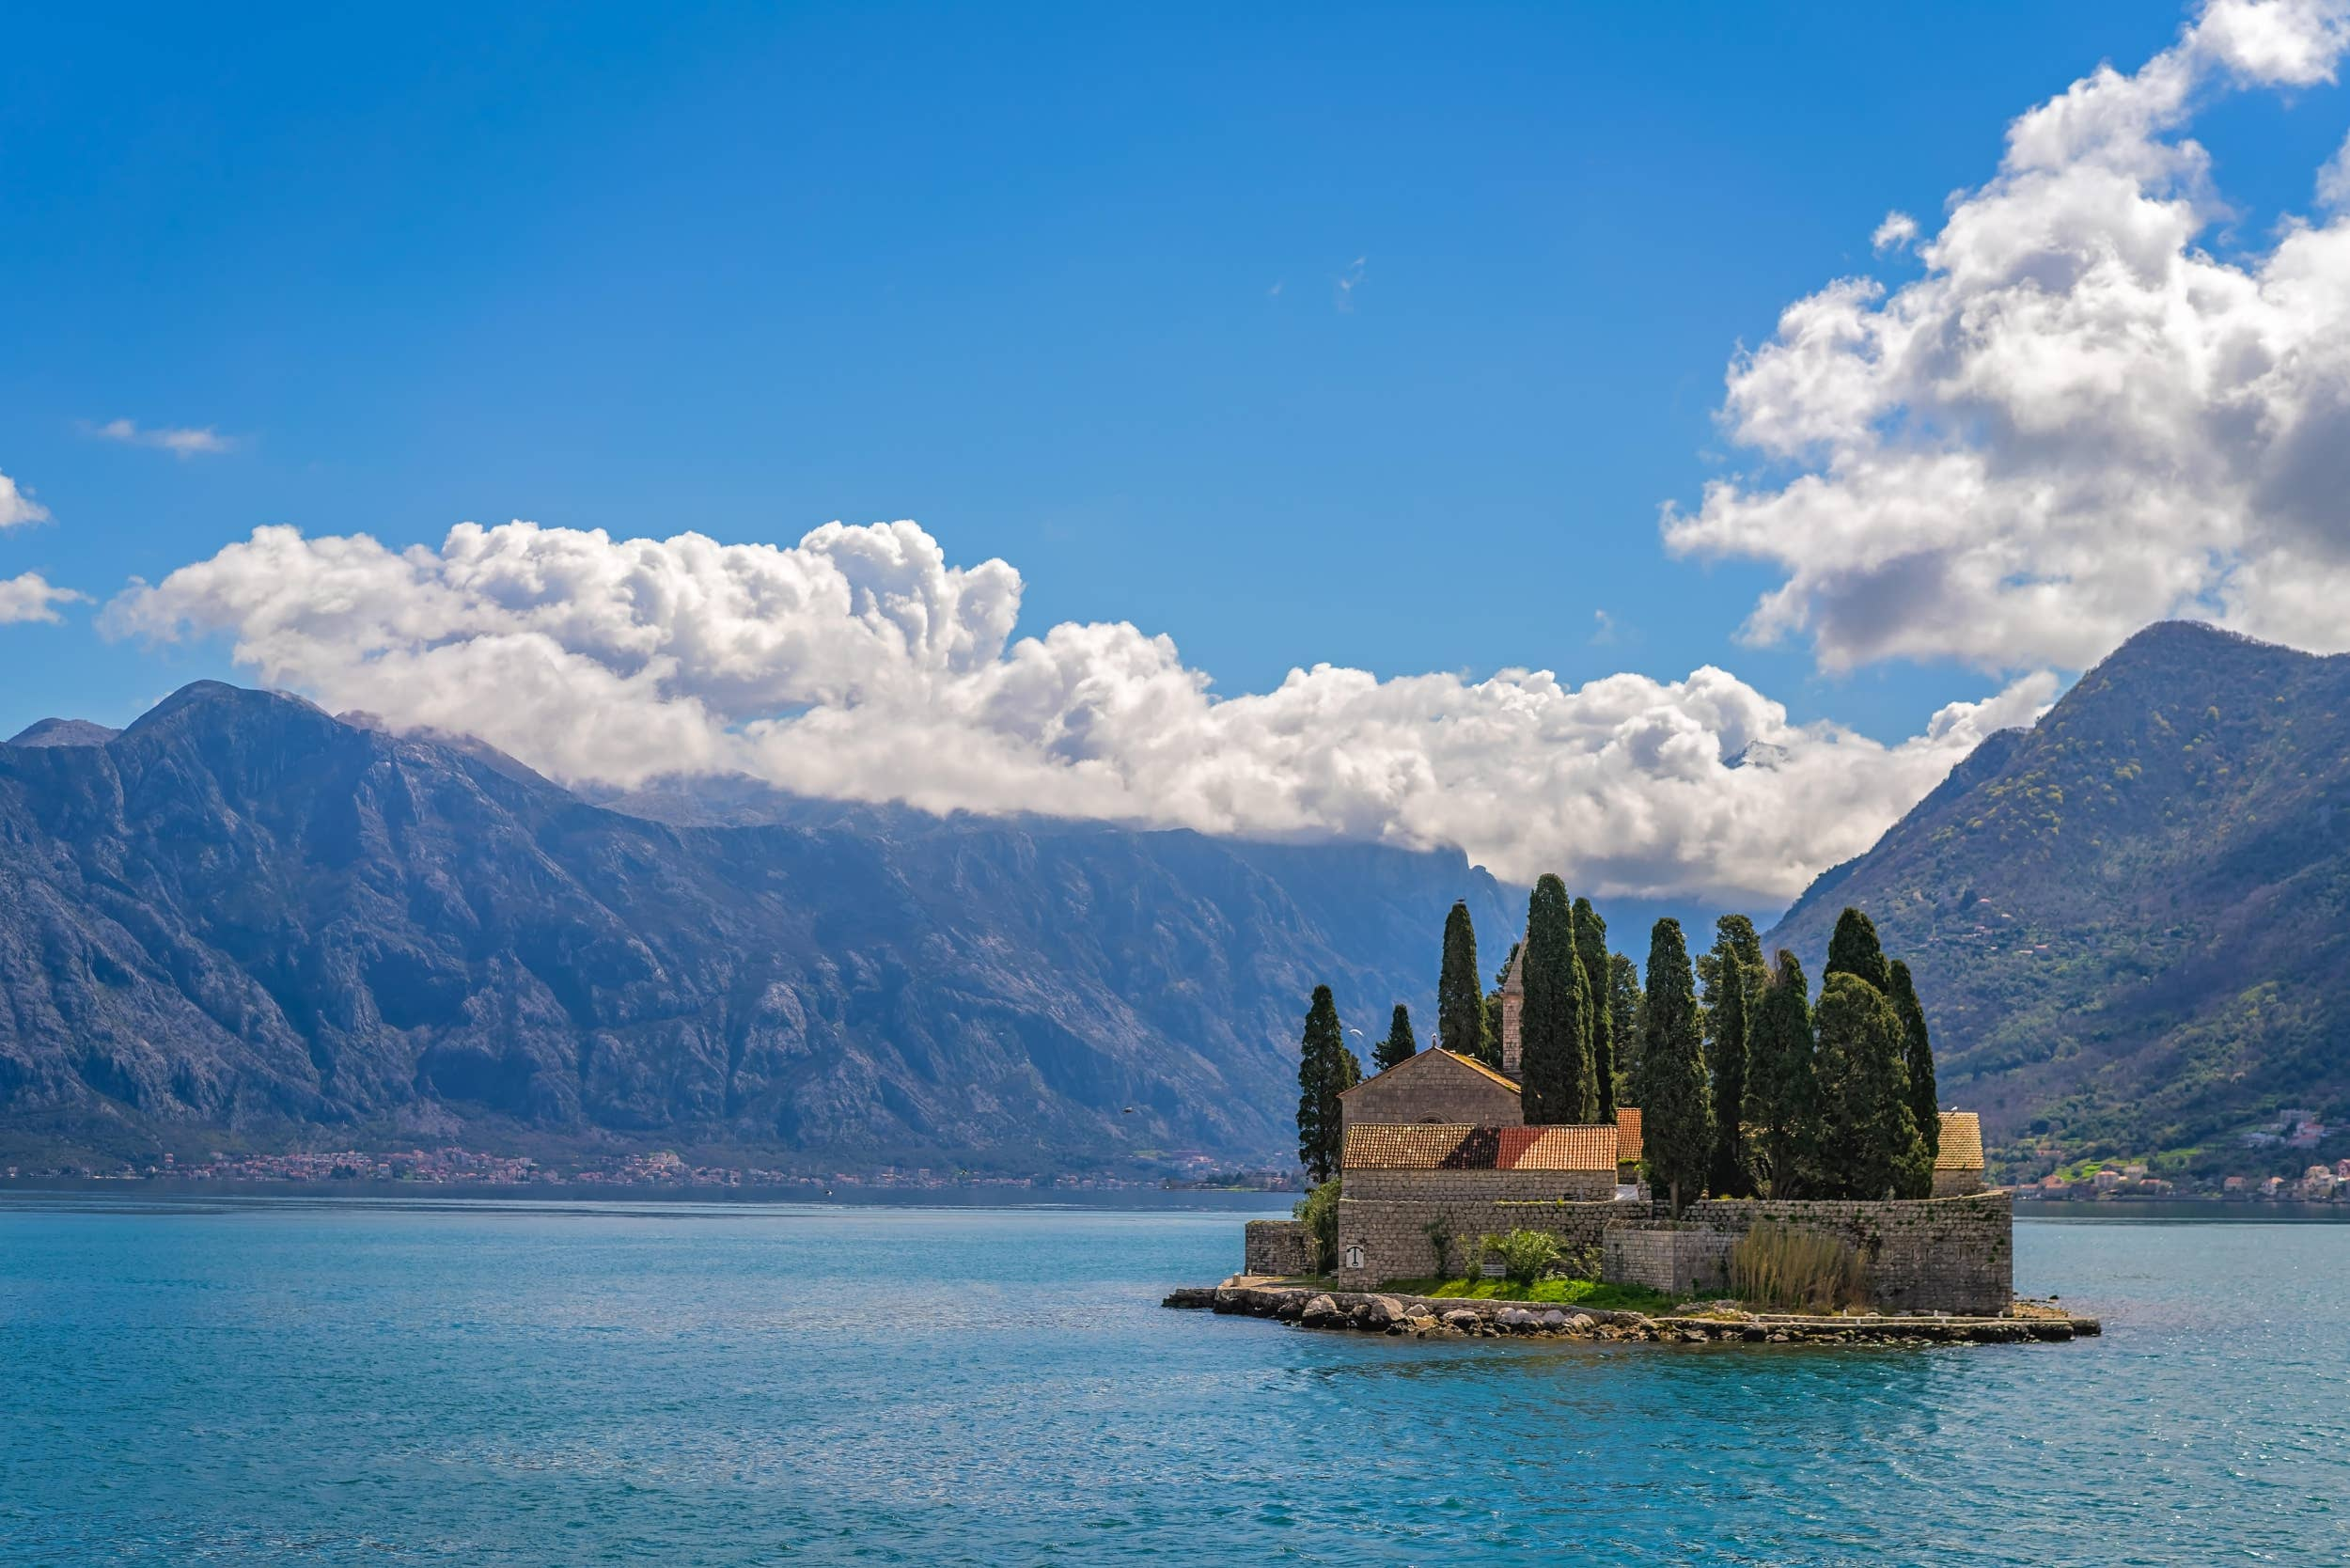 Holiday homes in Montenegro: £1 billion investment for majestic Boka Bay, with 1,500 homes, golf course, marinas and hotels